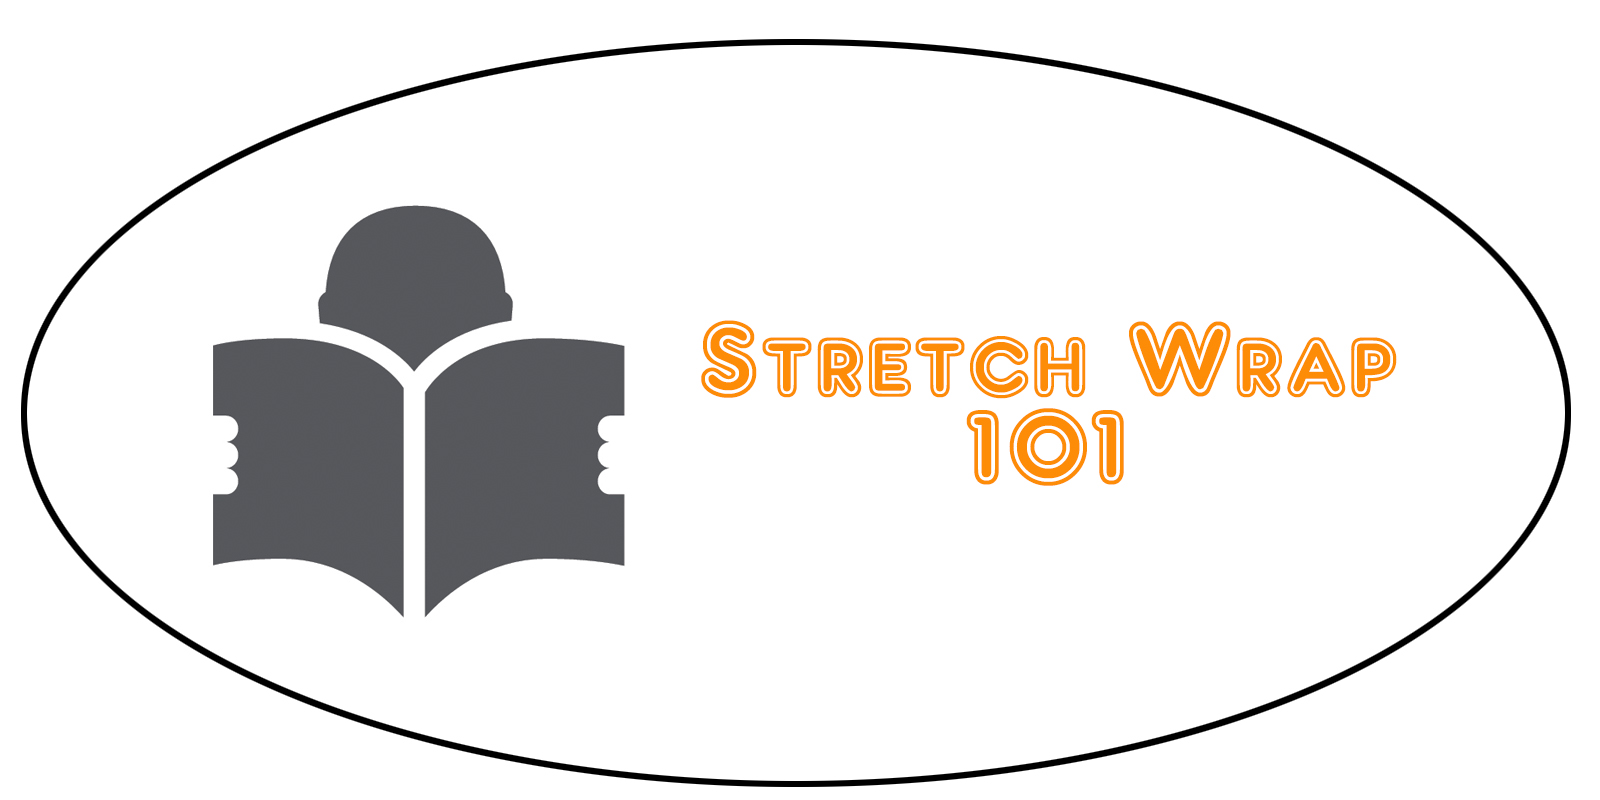 Stretch Wrap 101